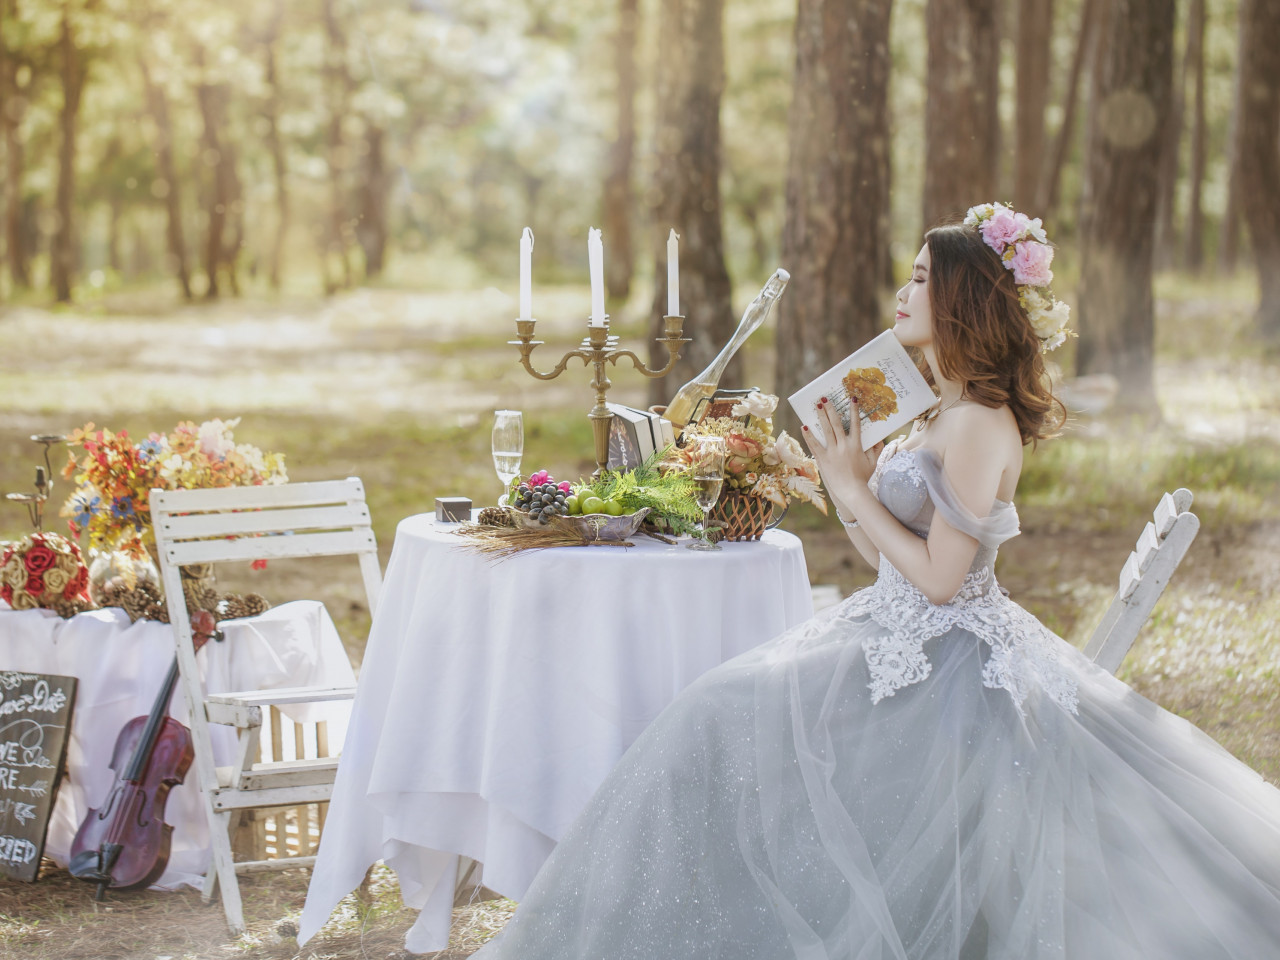 Bride in wedding outdoor scenery wallpaper 1280x960